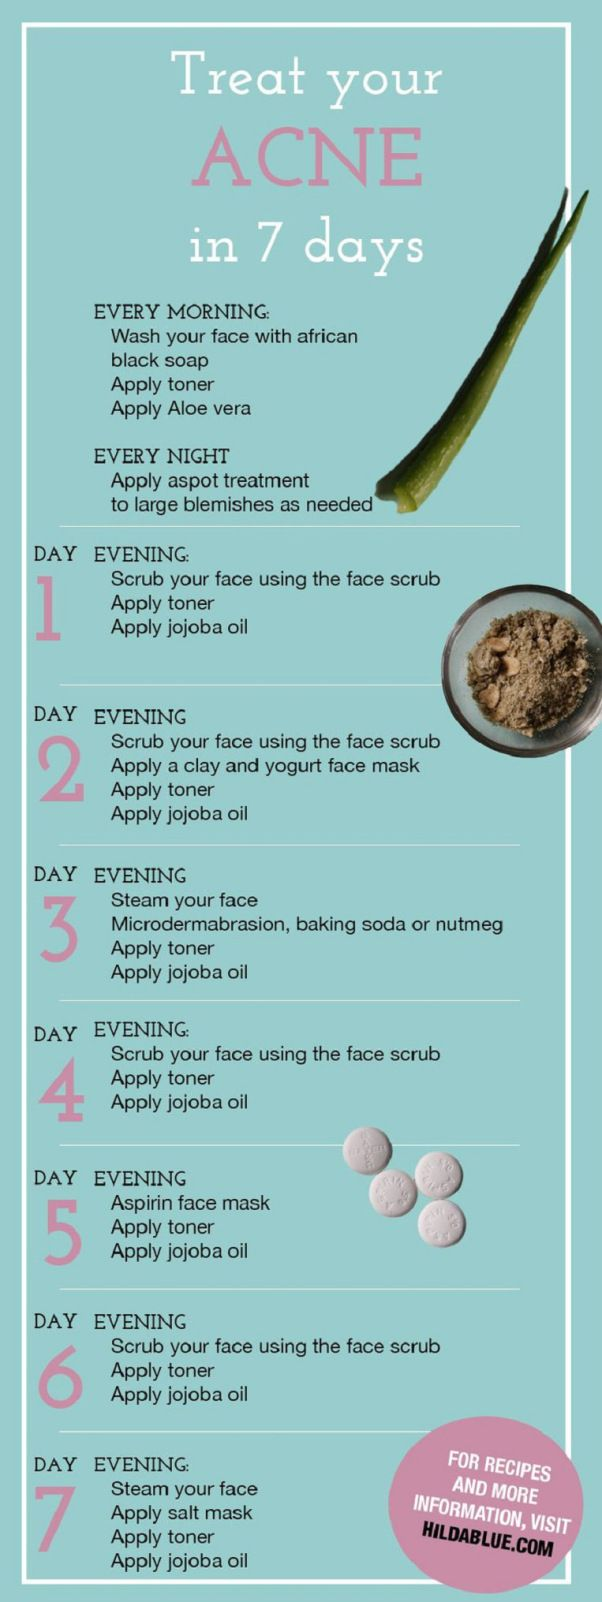 How to Treat Your Acne flare up in 7 Days